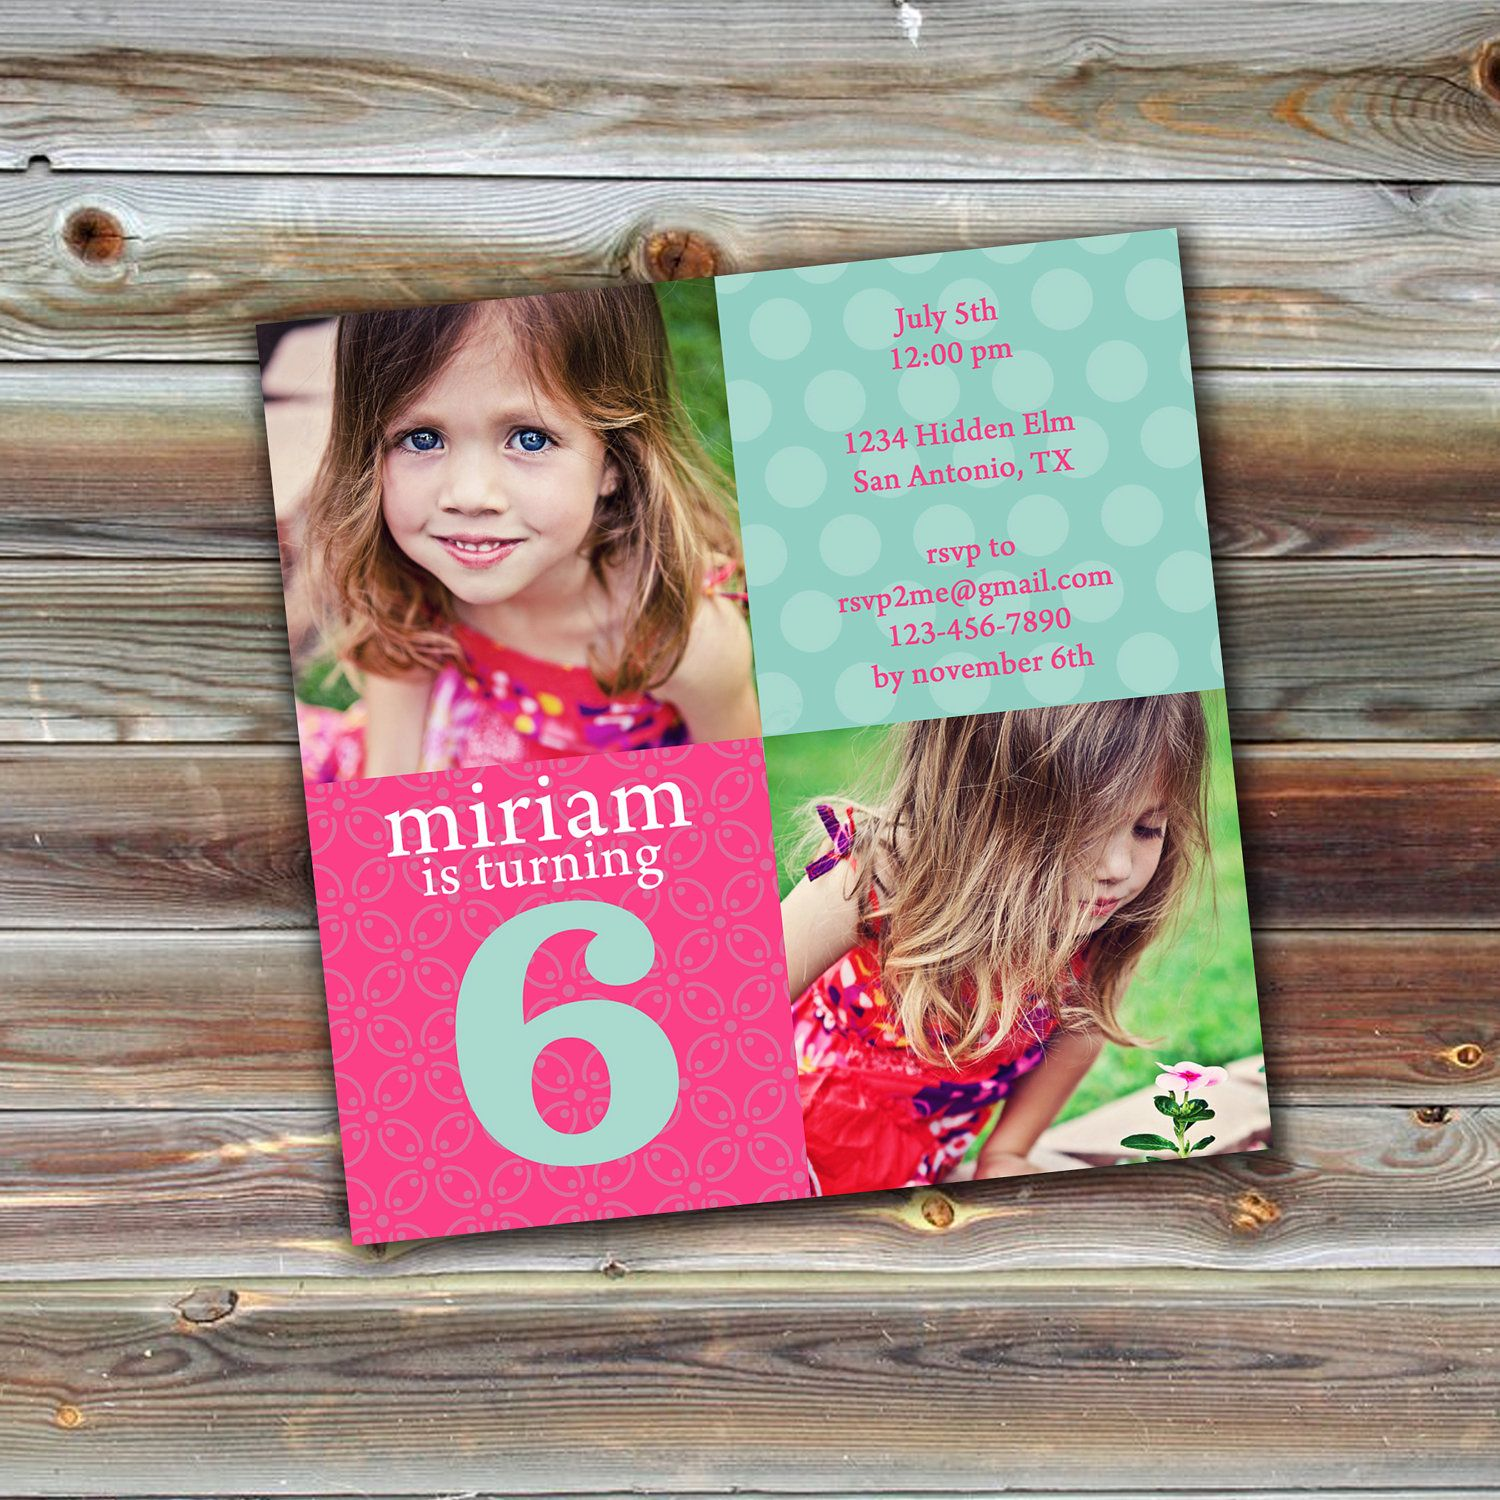 0563 5x5 Birthday Invitation Photoshop PSD Photo Card Template For Photographers